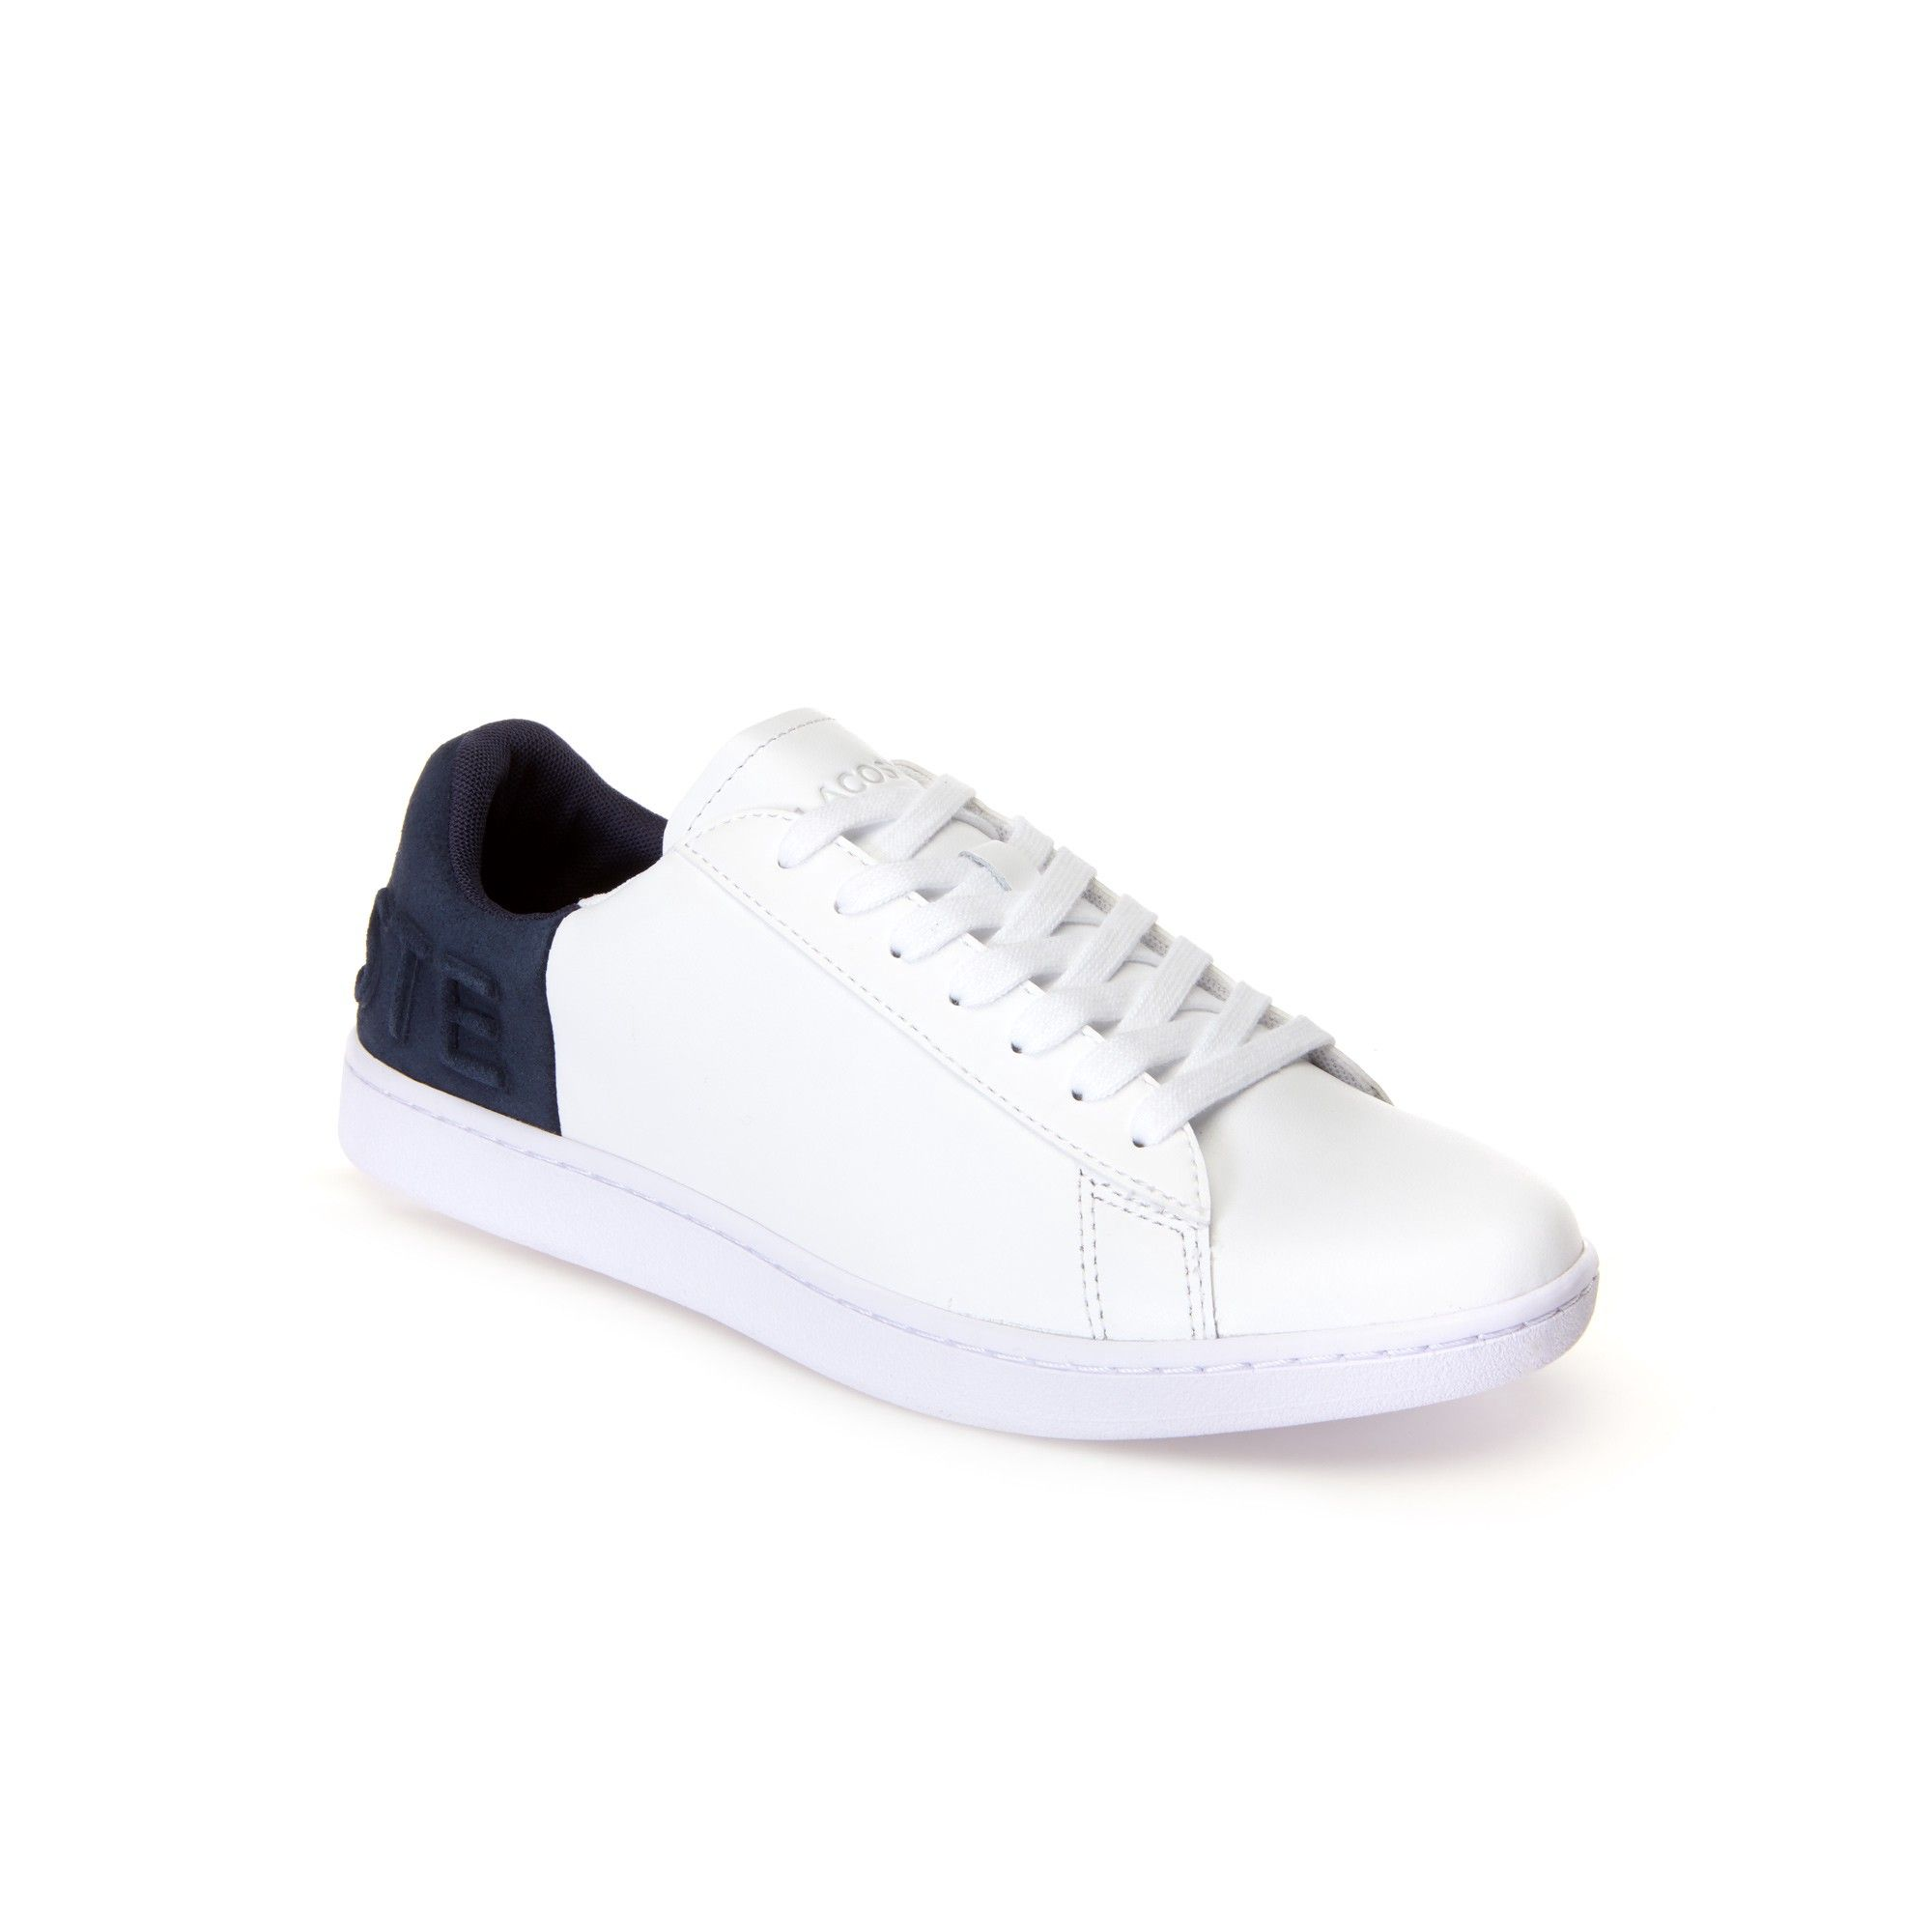 d7fd2afe2a Lacoste Women's Carnaby Evo Colour Block Leather Trainers - White ...